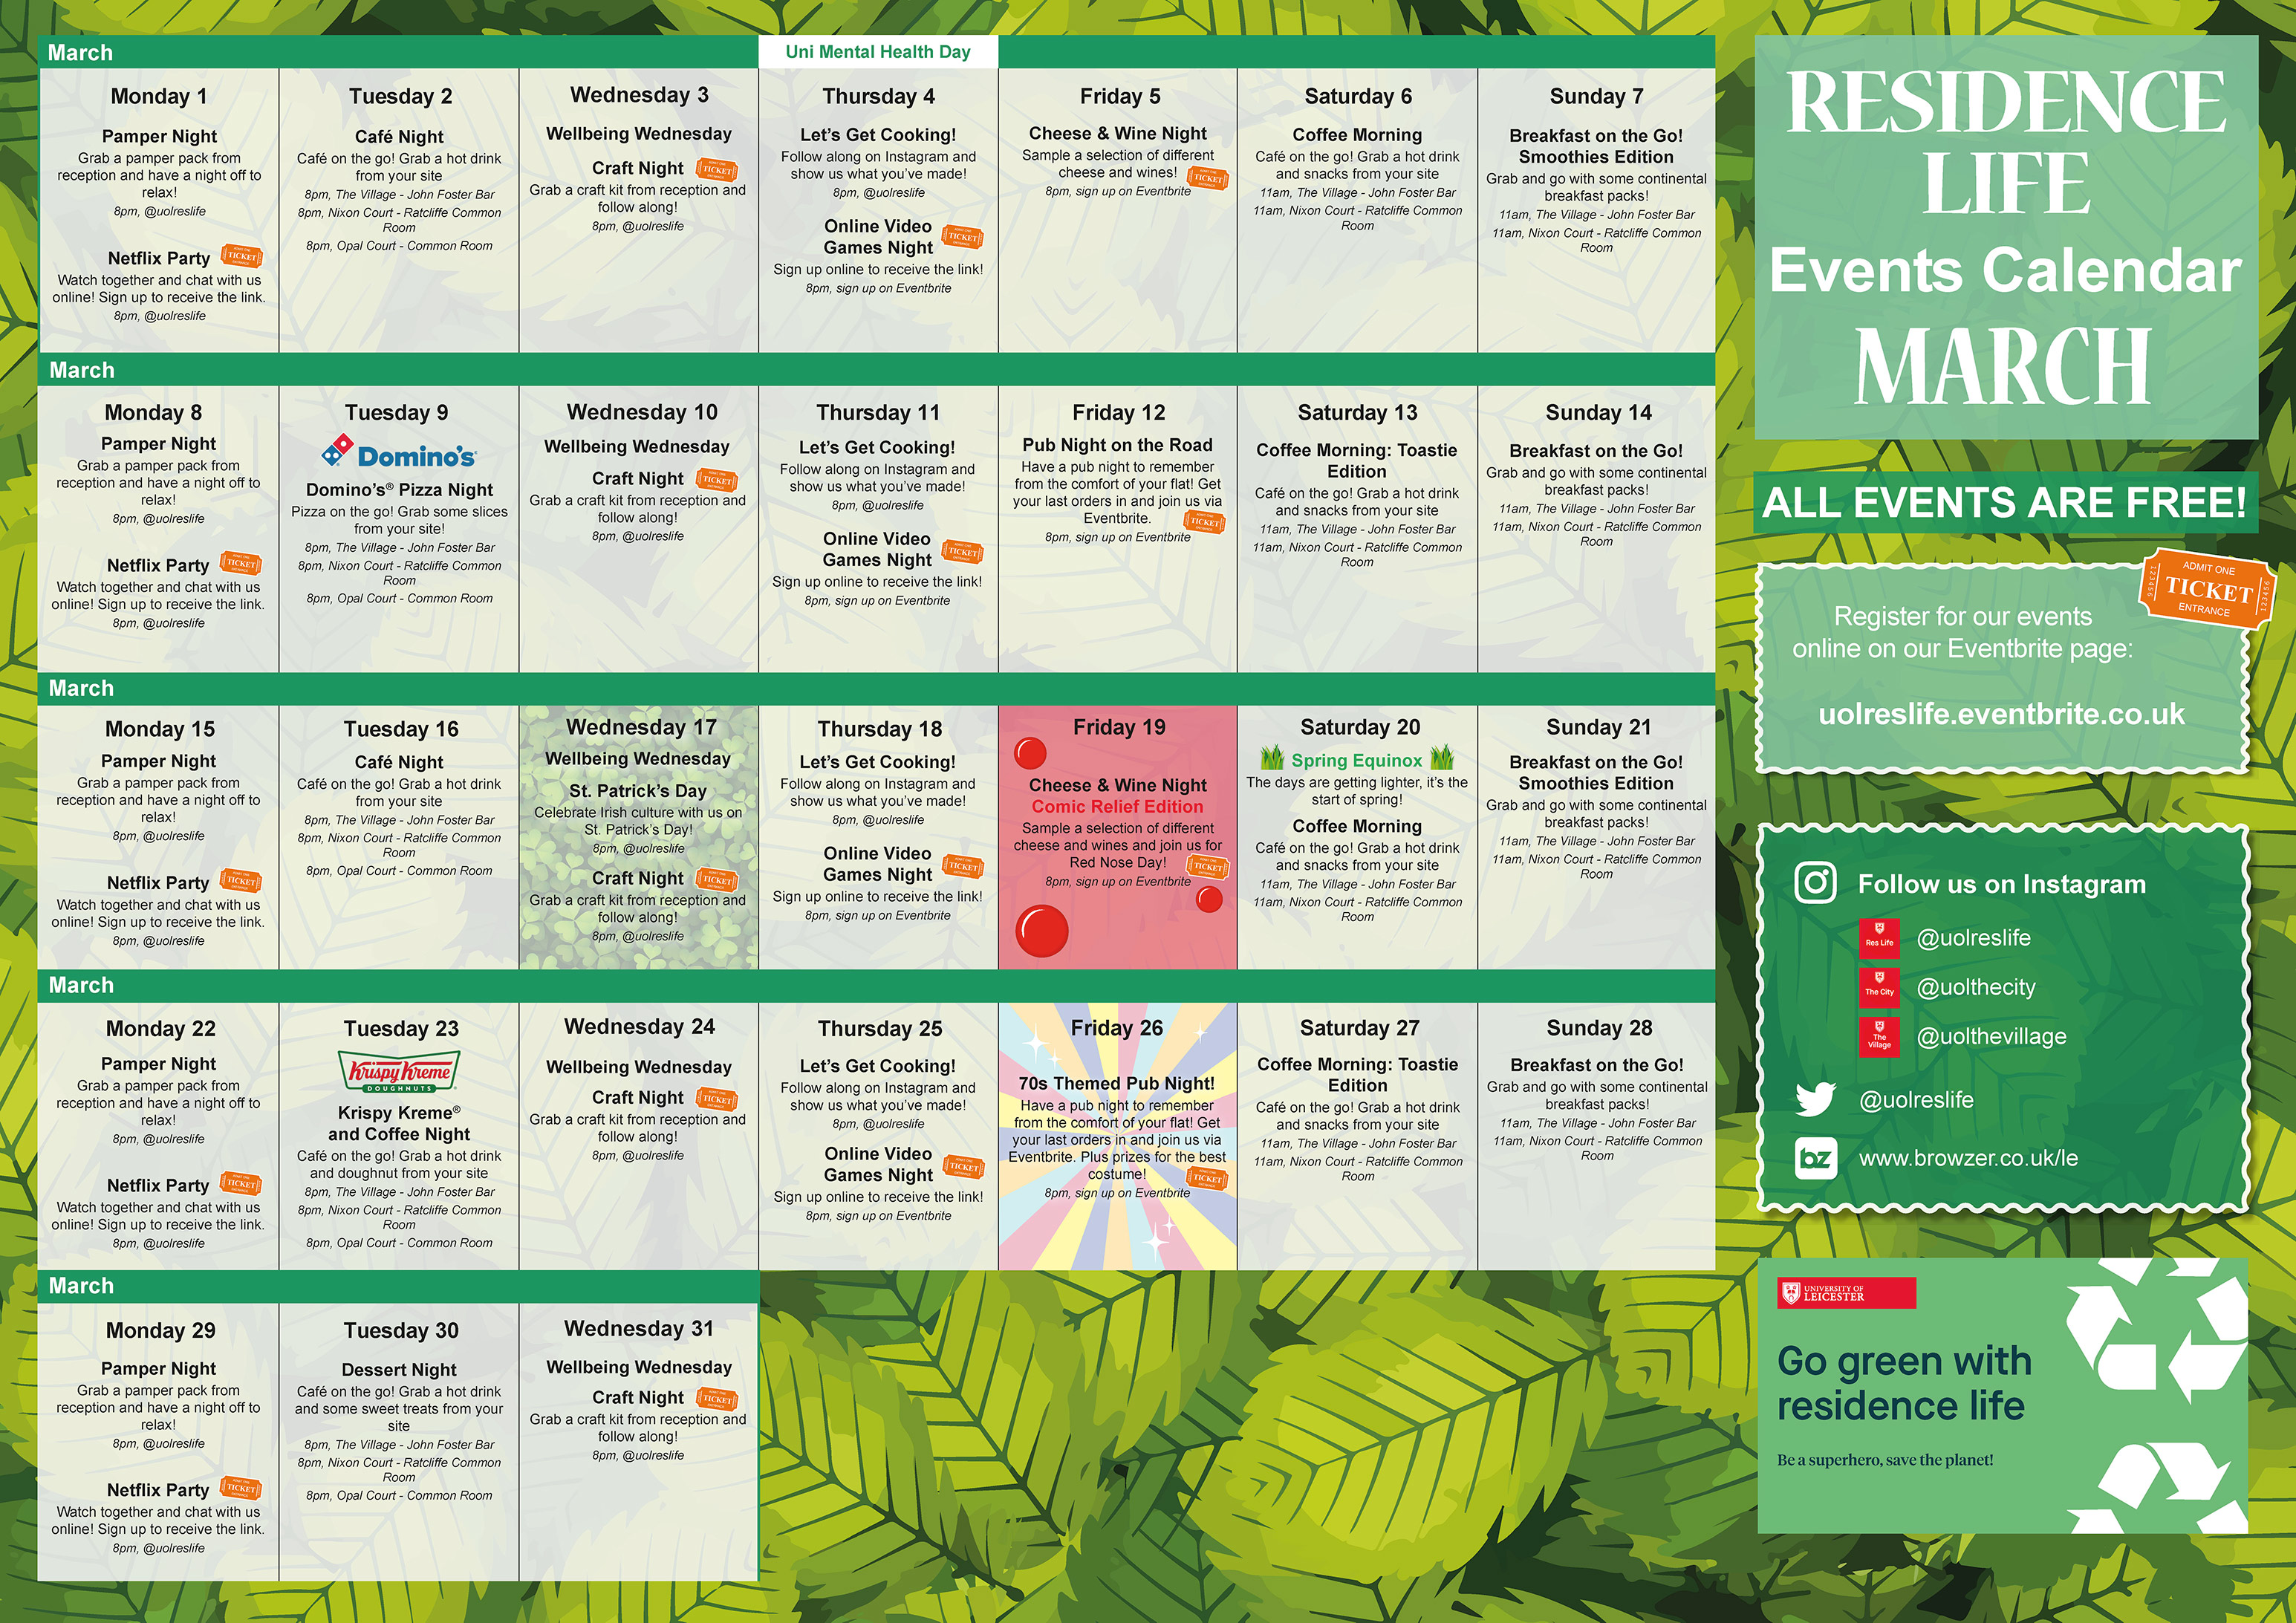 Residence Life March Events Calendar